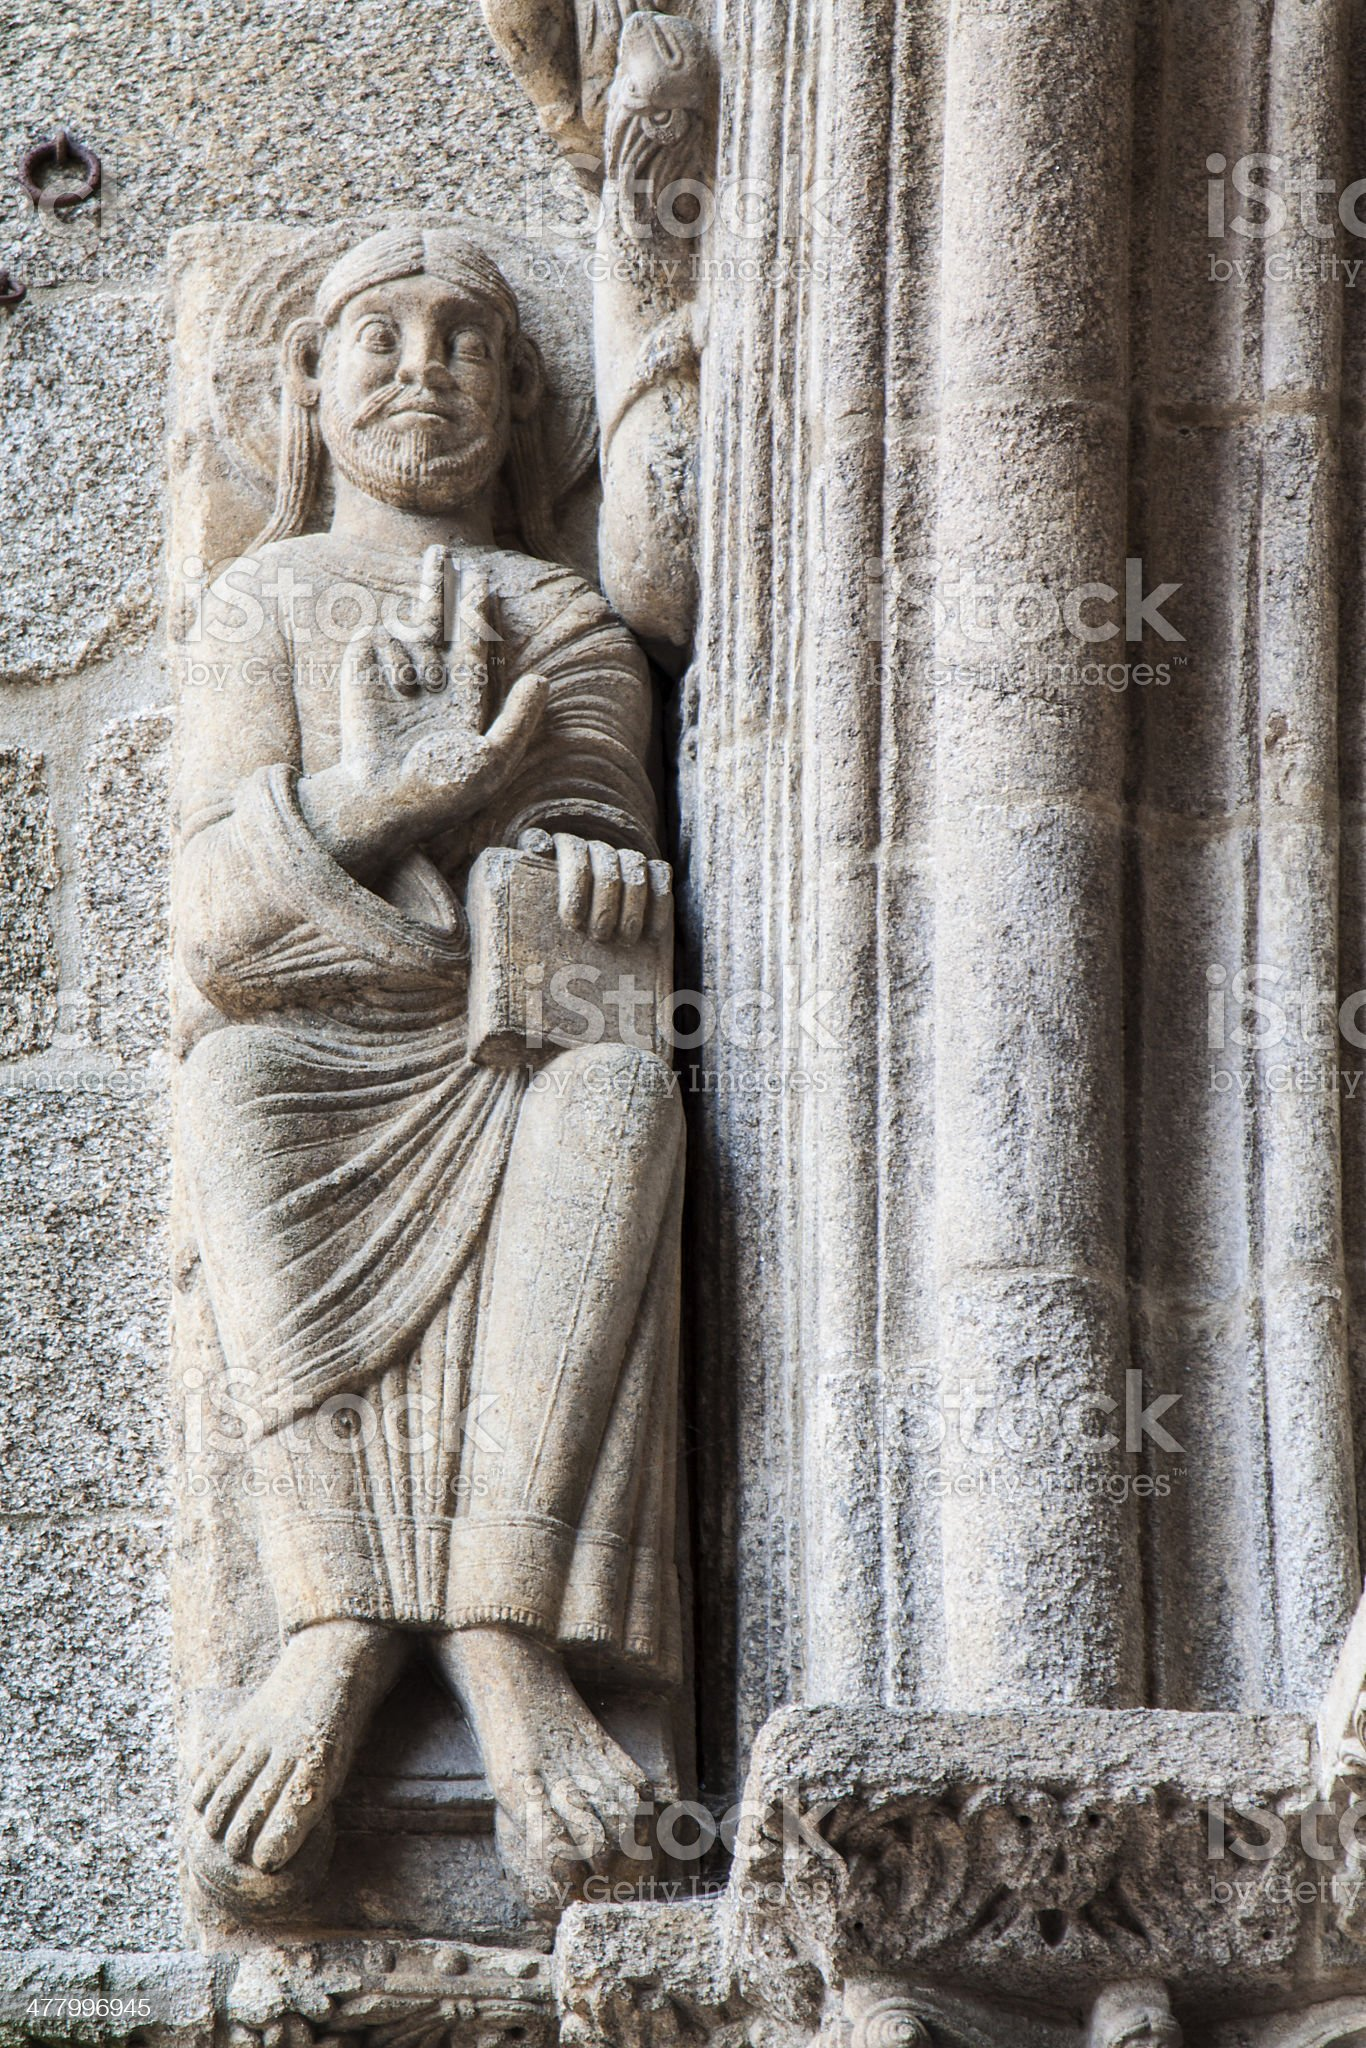 Statue and architecture details at Santiago Cathedra royalty-free stock photo